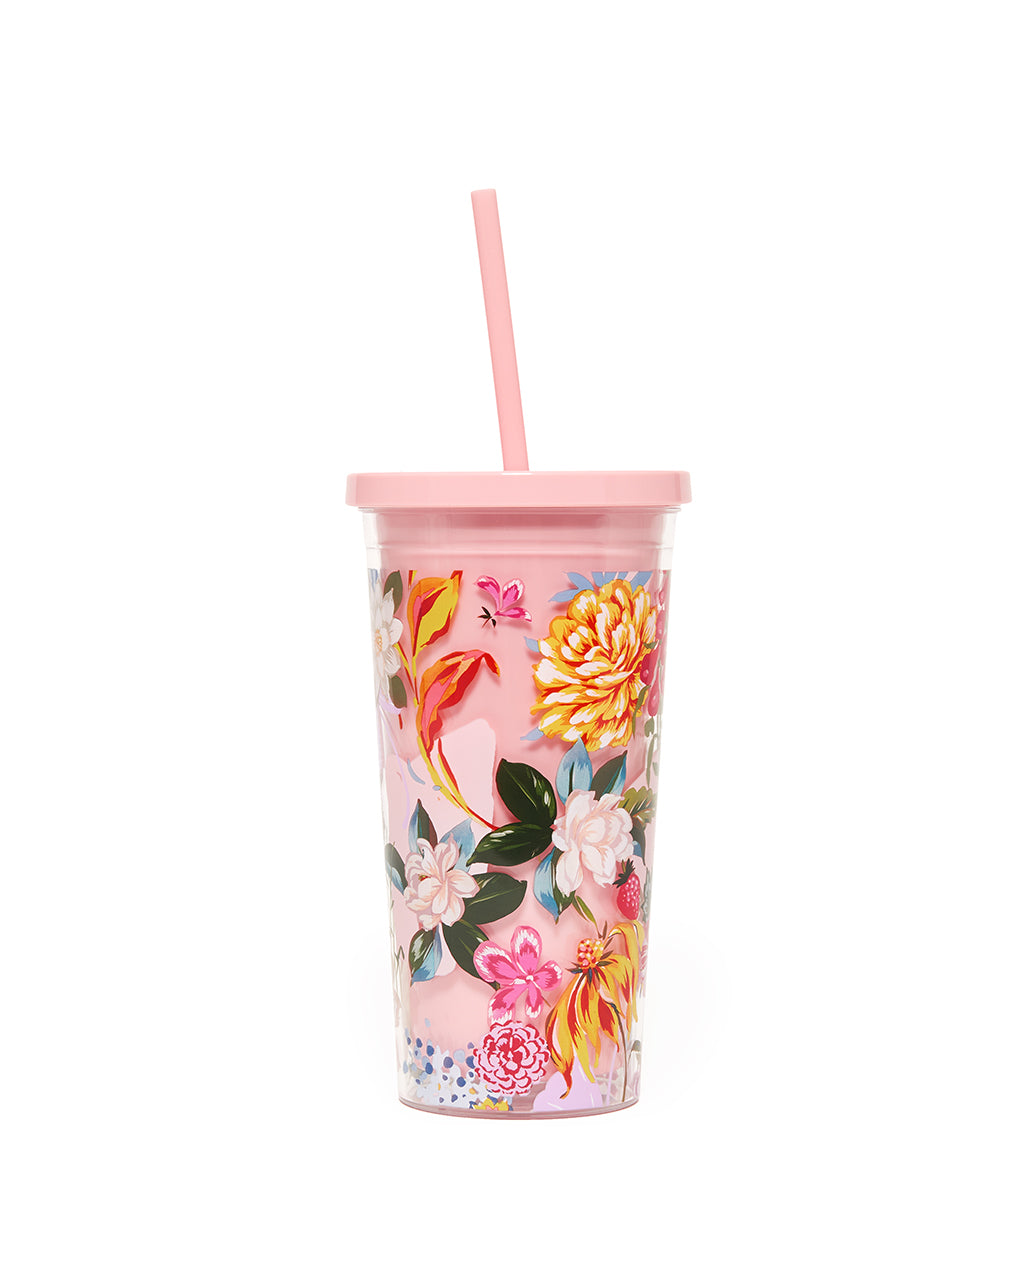 This Sip Sip Tumbler comes with a colorful floral pattern designed by Helen Dealtry printed on the outside.